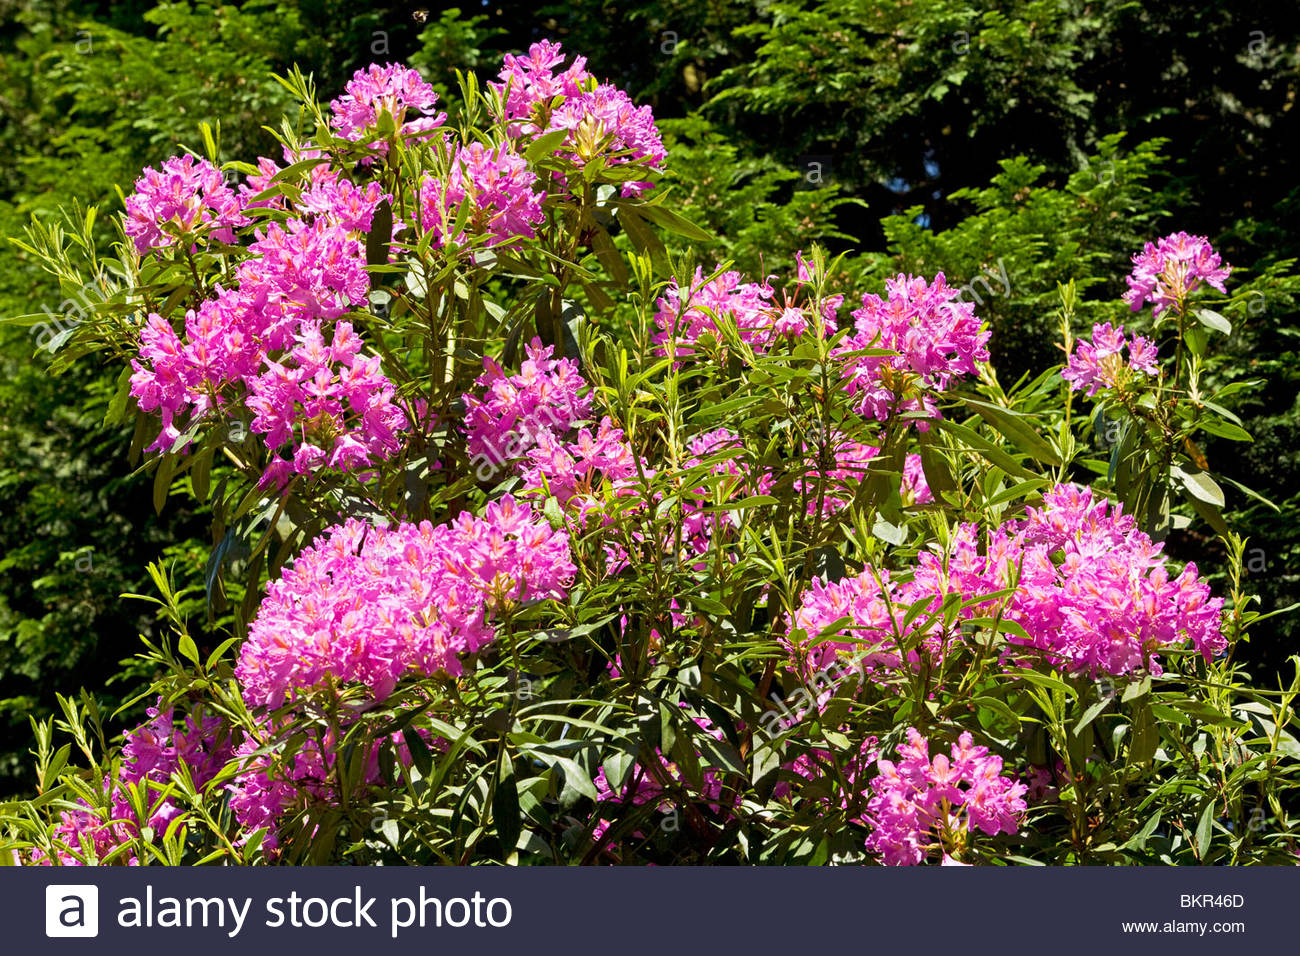 Rhododendron Flowers (Rhododendron ponticum), Lancashire, England, UK - Stock Image